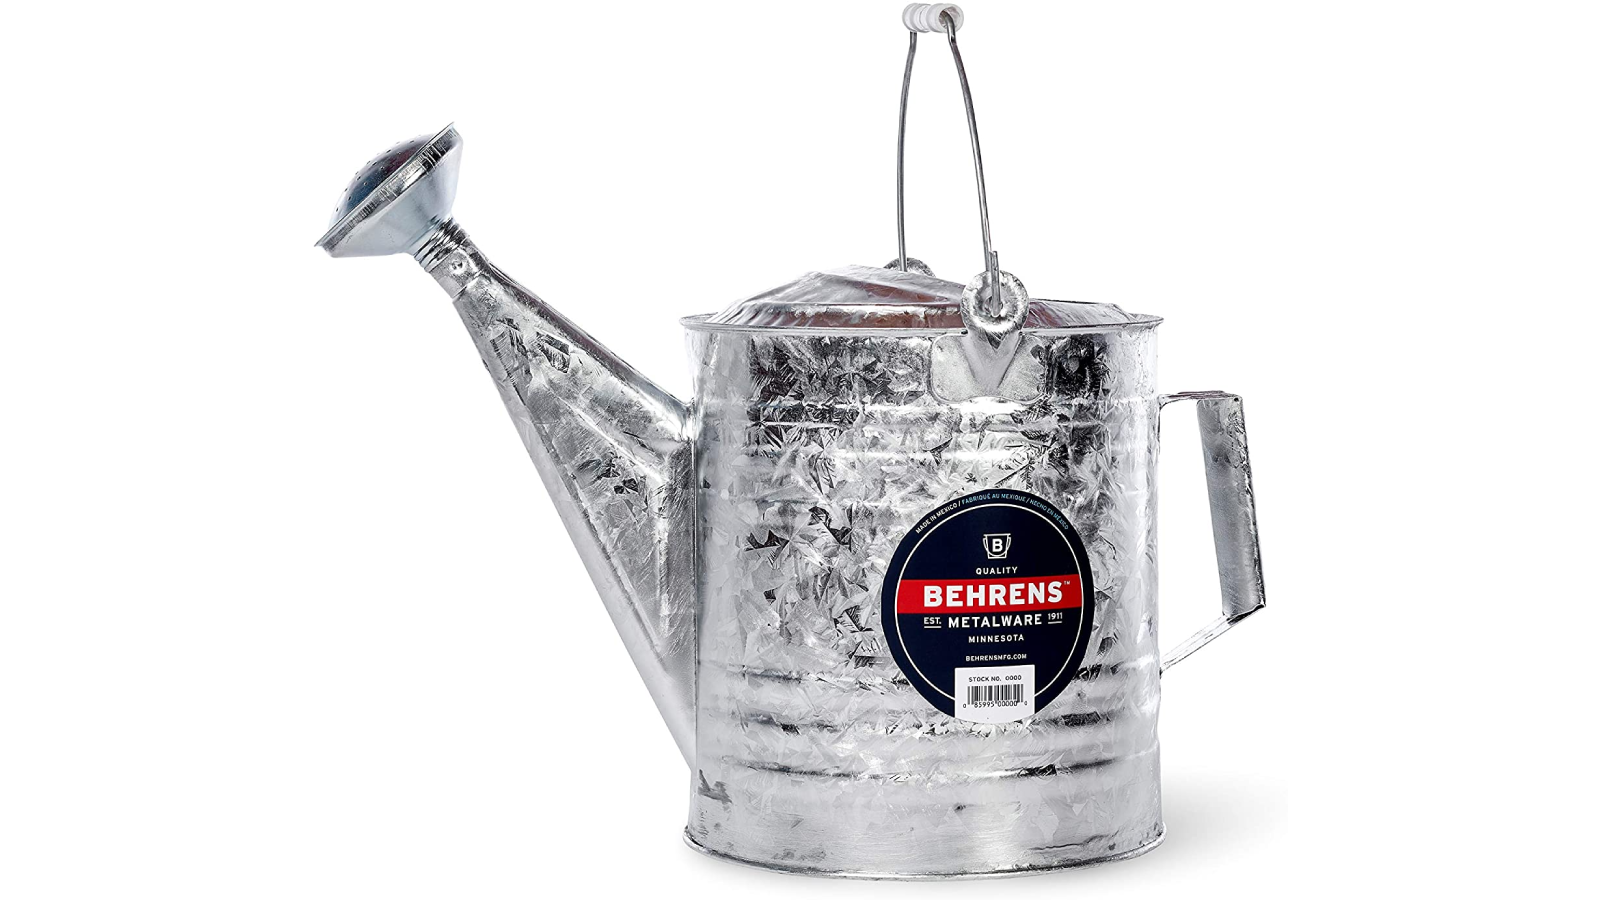 Stainless steel watering can with a side and top handle.